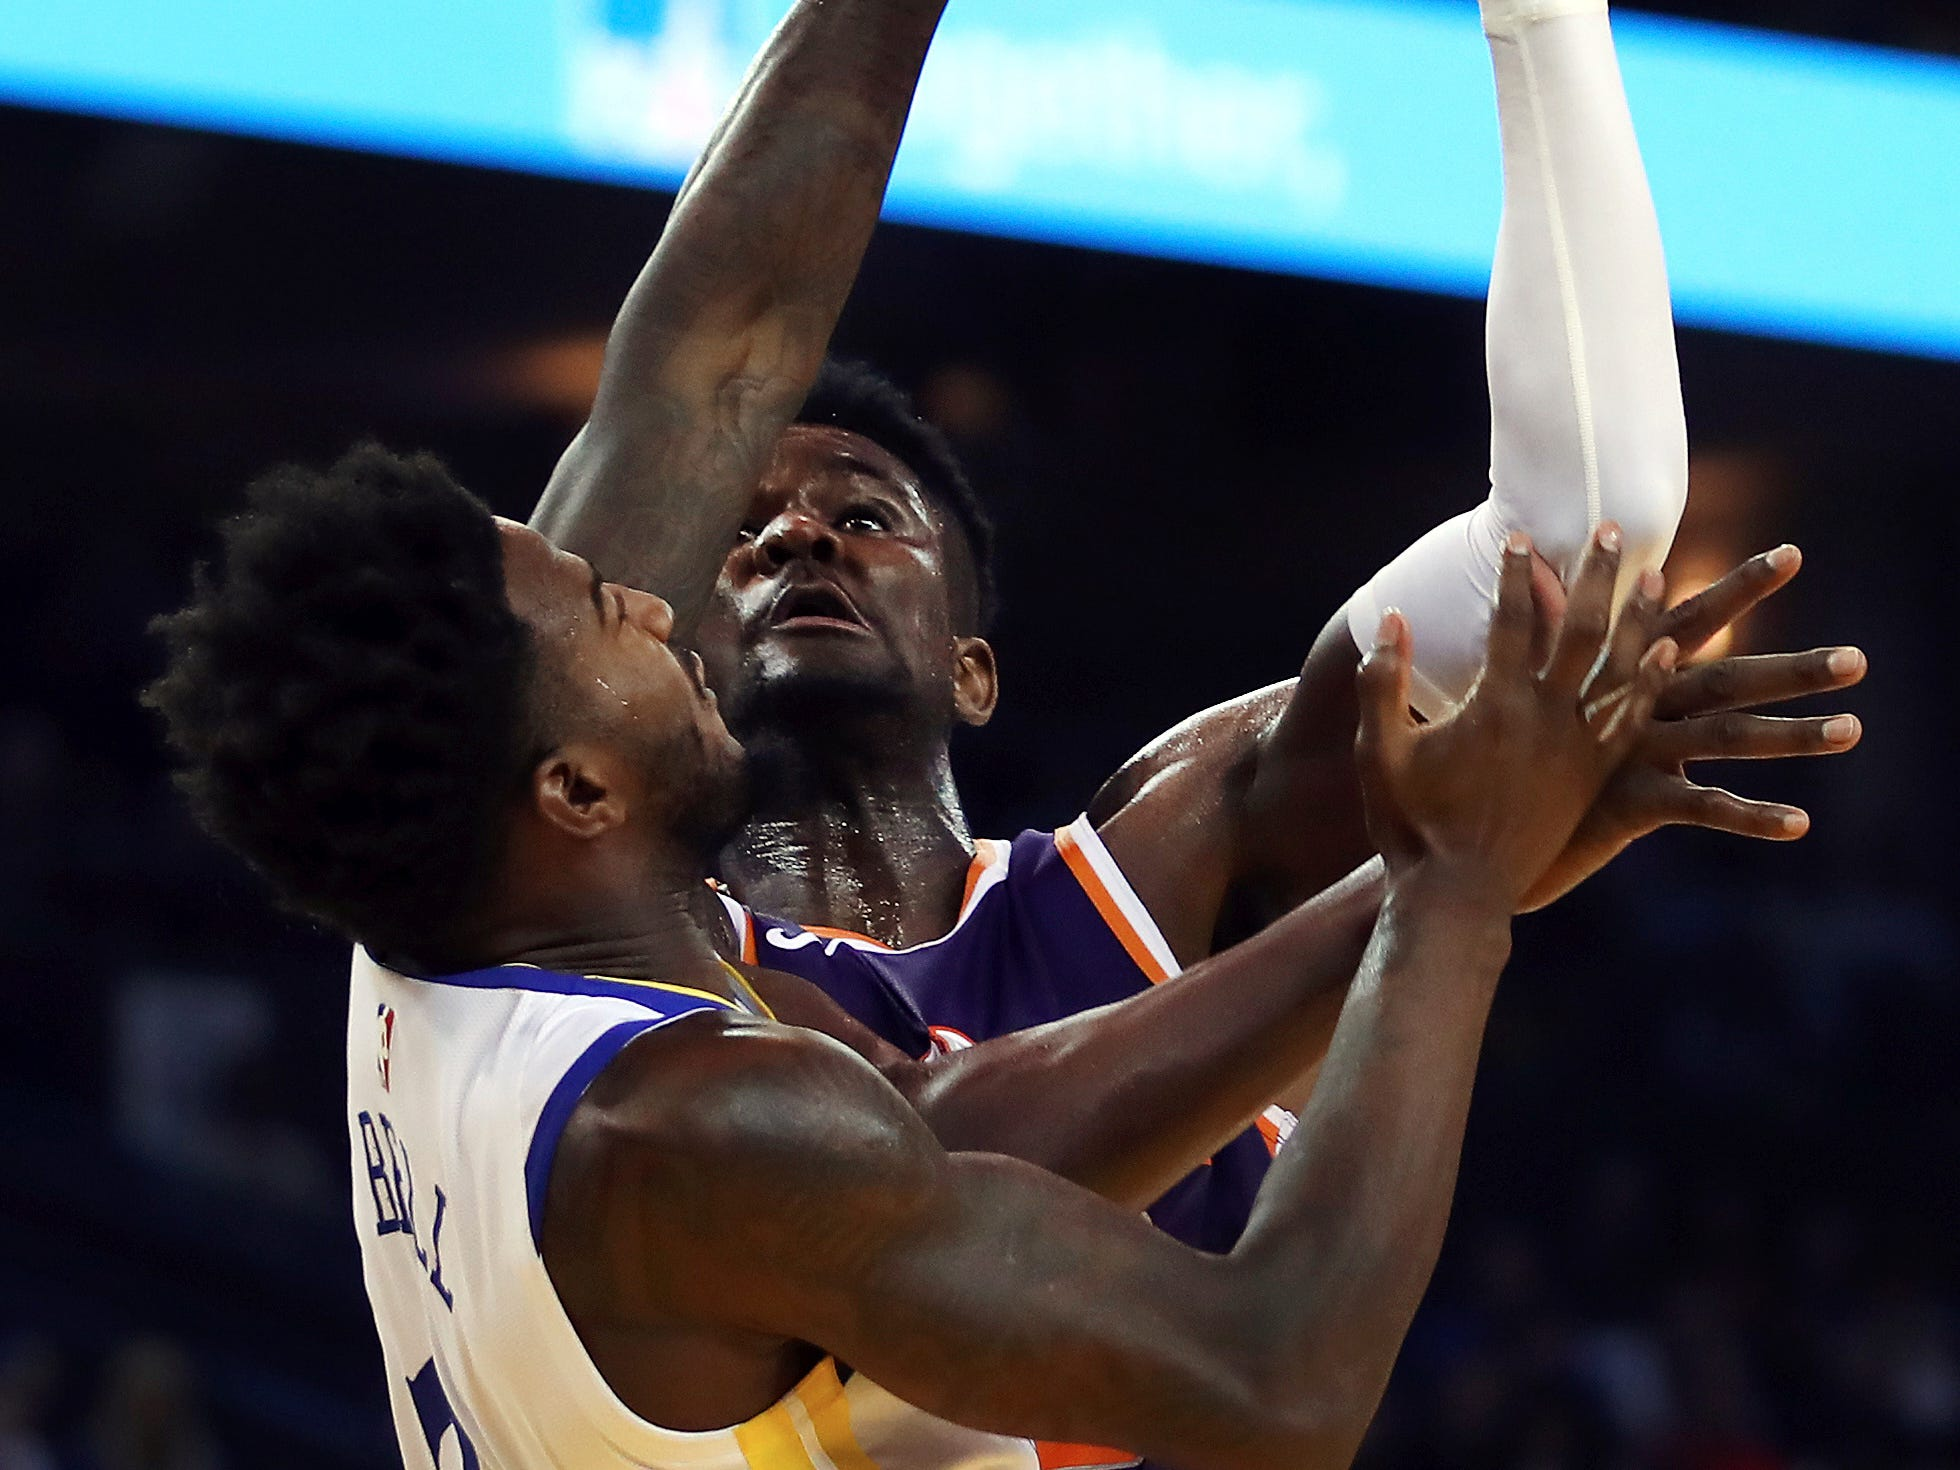 Phoenix Suns' Deandre Ayton shoots over Golden State Warriors' Jordan Bell, left, during the first half of a preseason NBA basketball game Monday, Oct. 8, 2018, in Oakland, Calif.